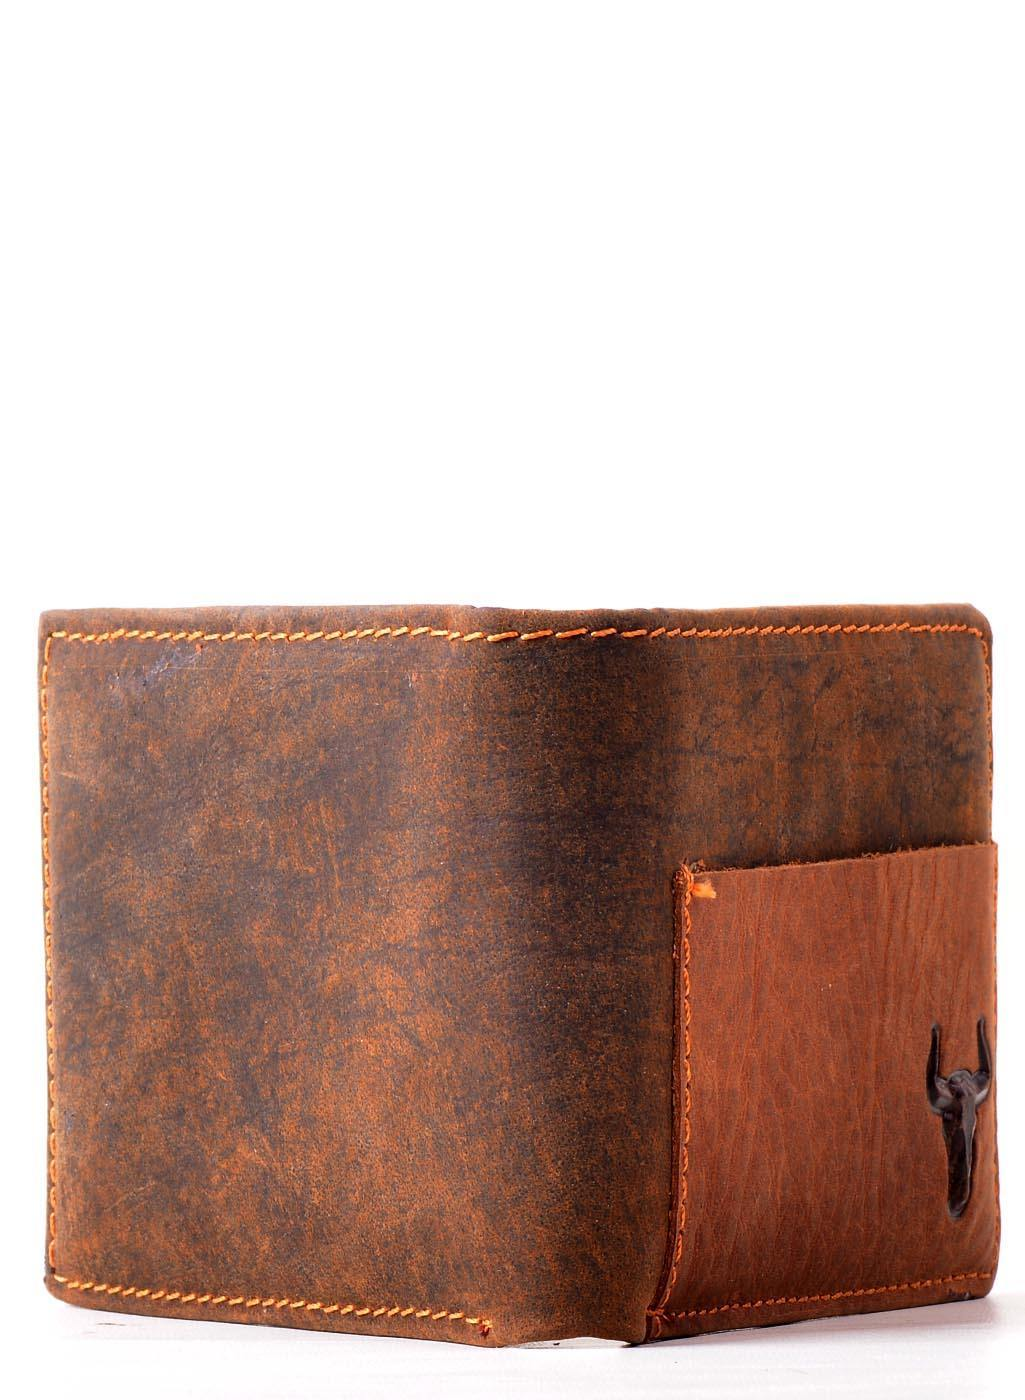 EthniCache Wallet Rugged Handmade Pure Leather Wallet